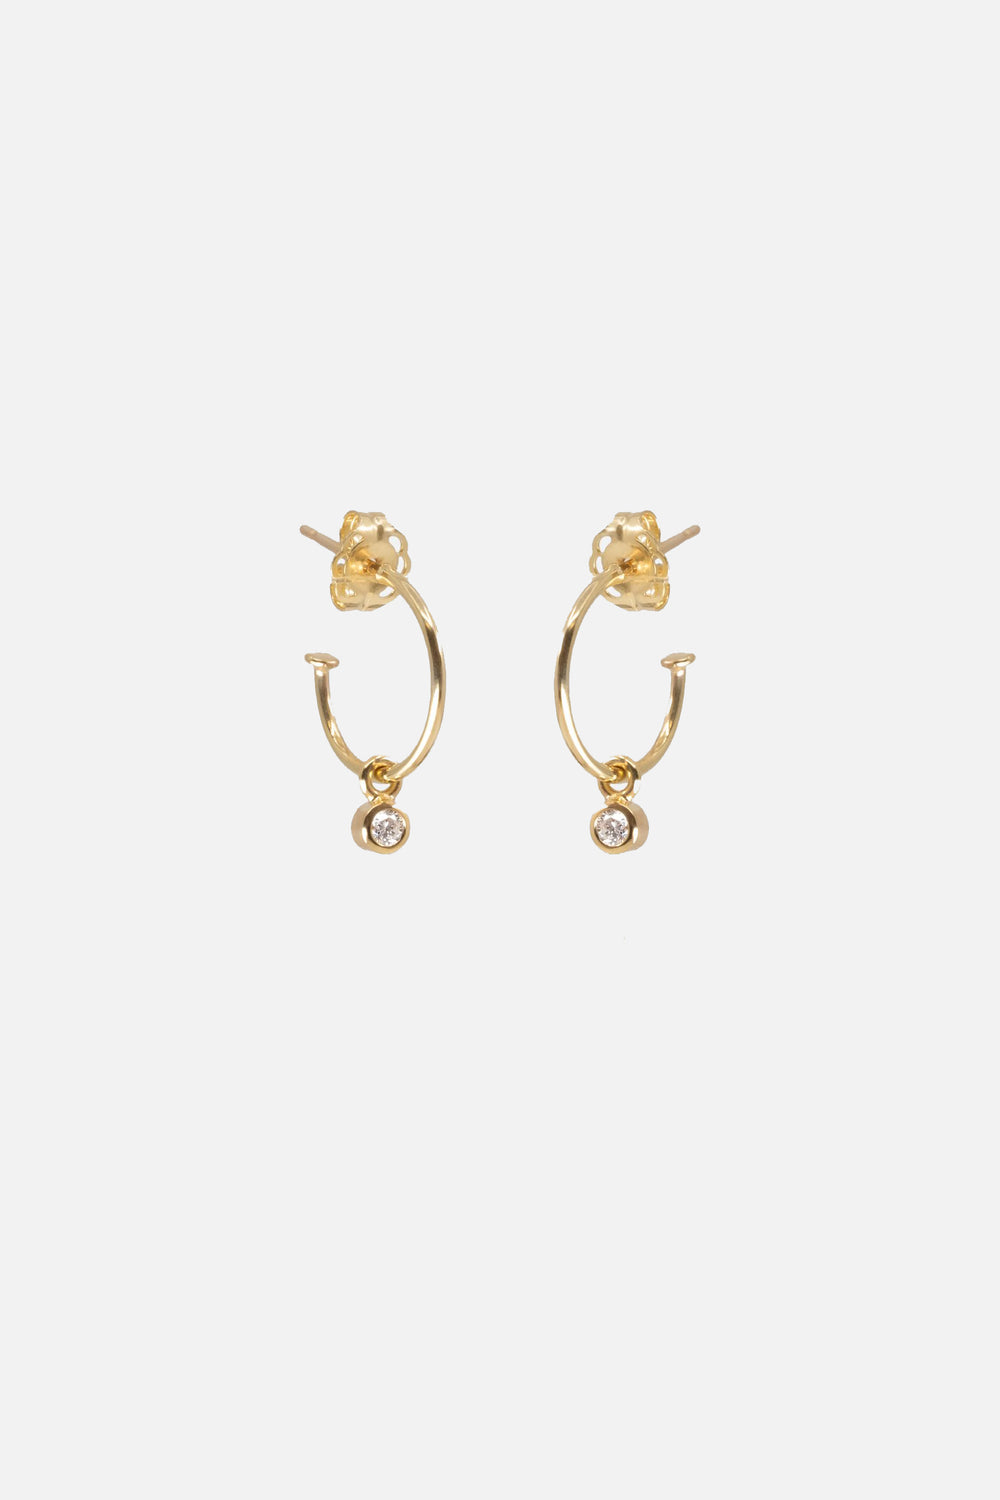 Hoops with Diamond Drop | 9K Yellow Gold